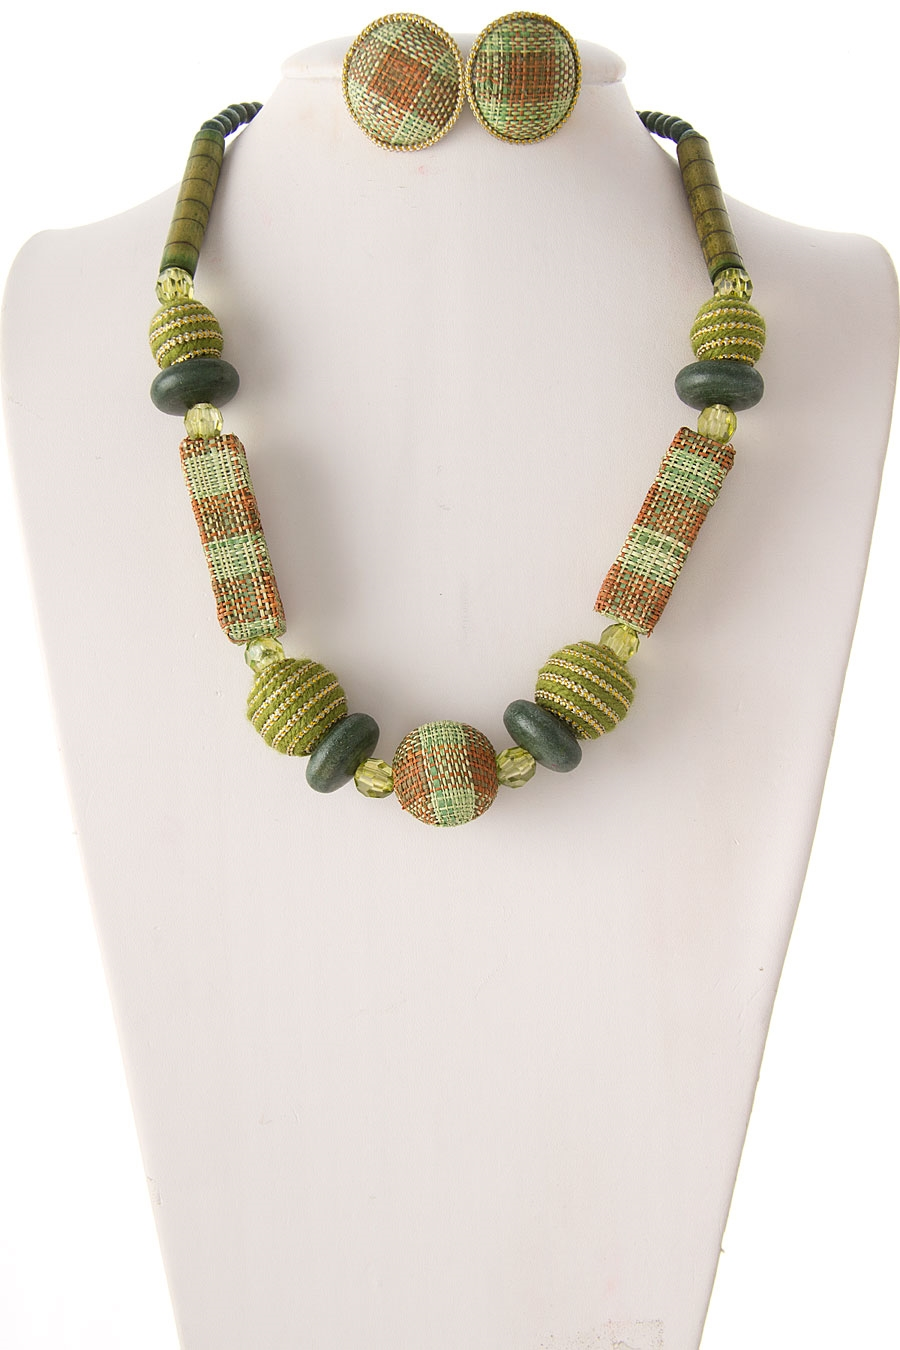 FASHION WOOD BEADS NECKLACE - orangeshine.com